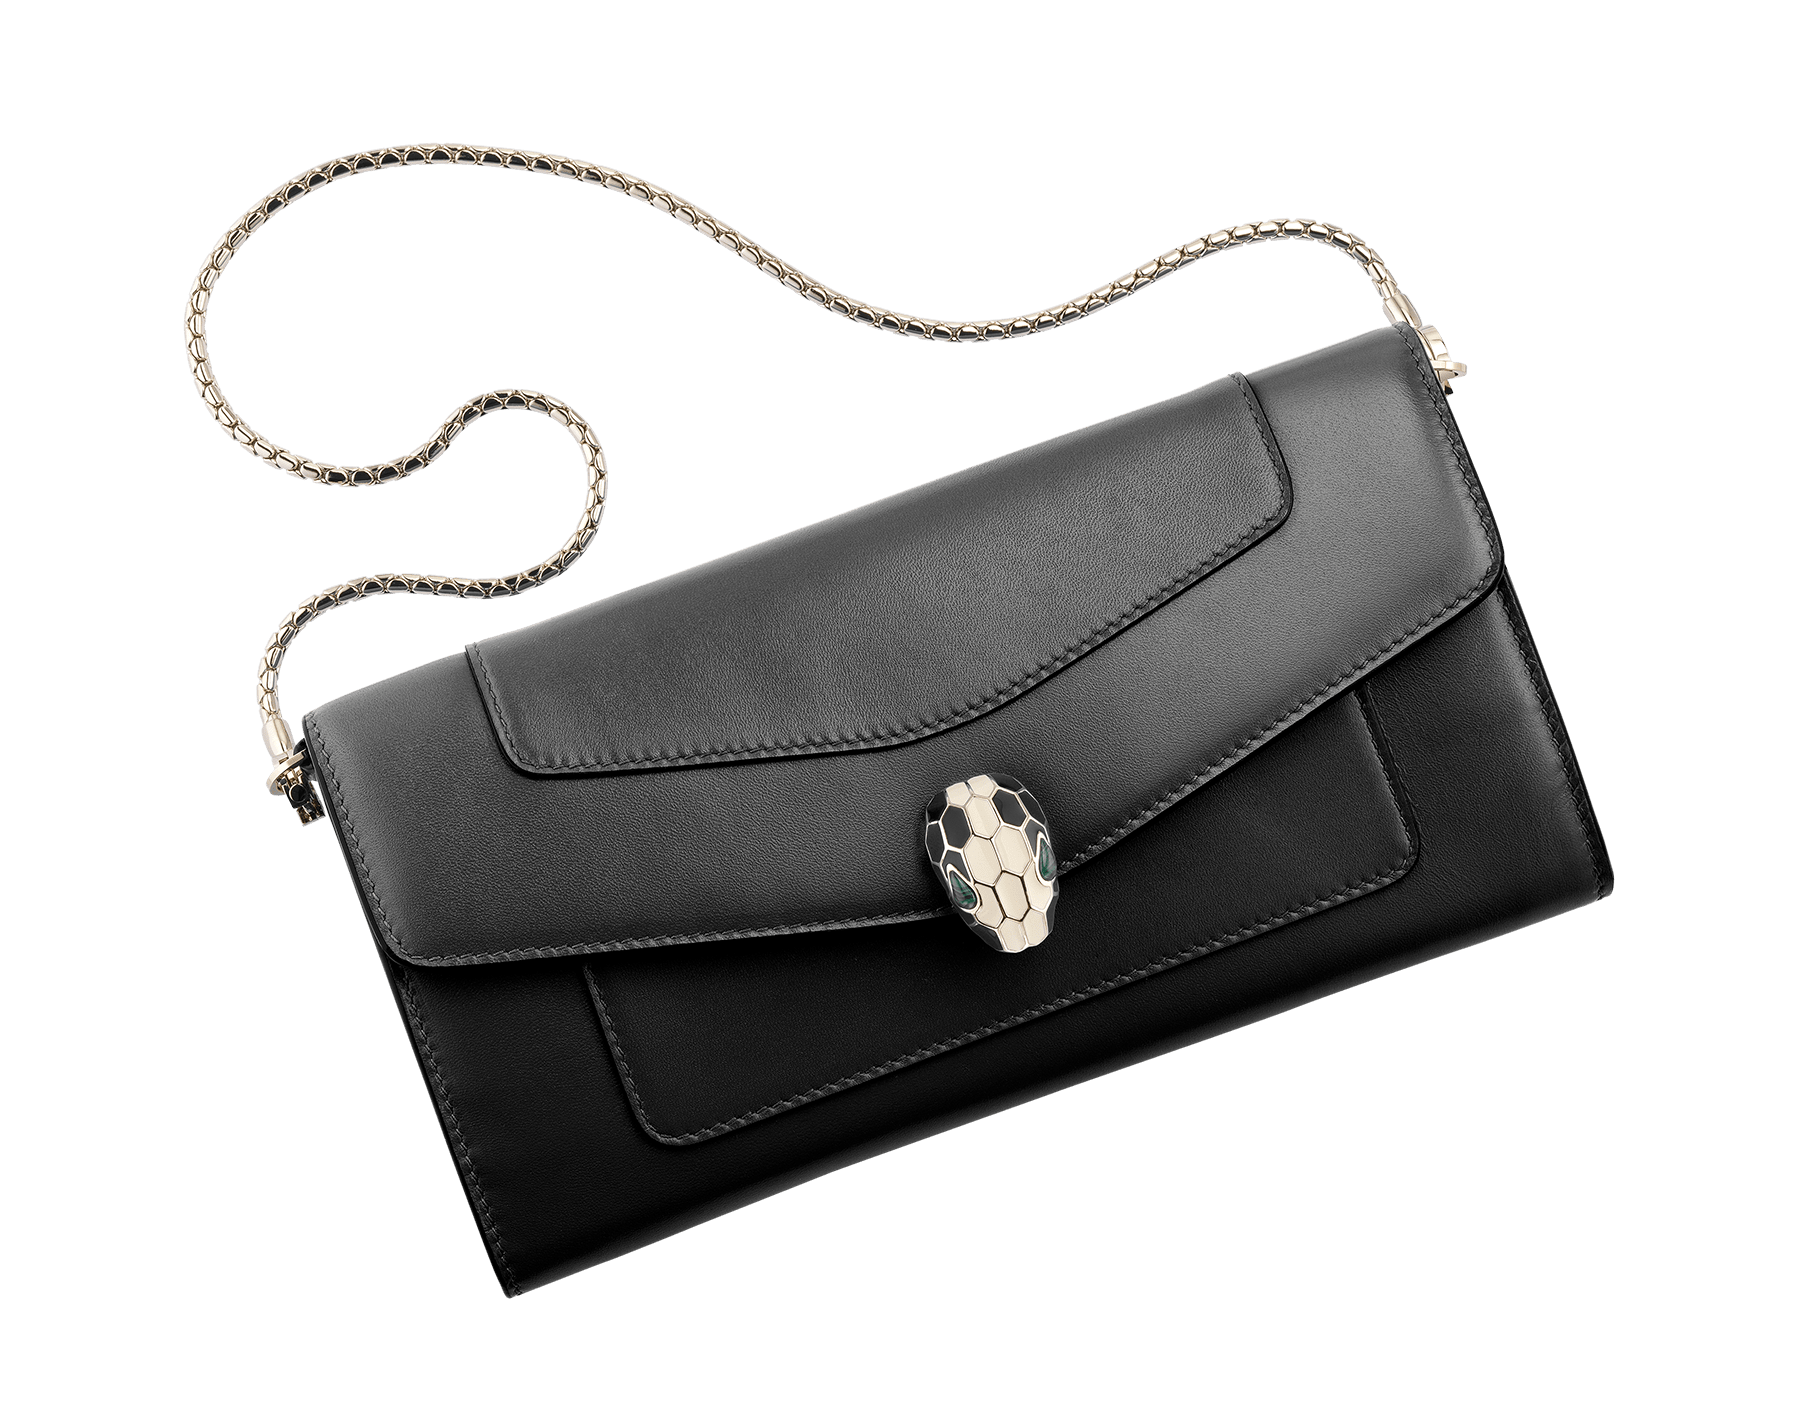 Wallet pouch in black and emerald green calf leather, with malachite nappa lining. Brass light gold plated hardware and removable snake body shaped short chain. 280467 image 1